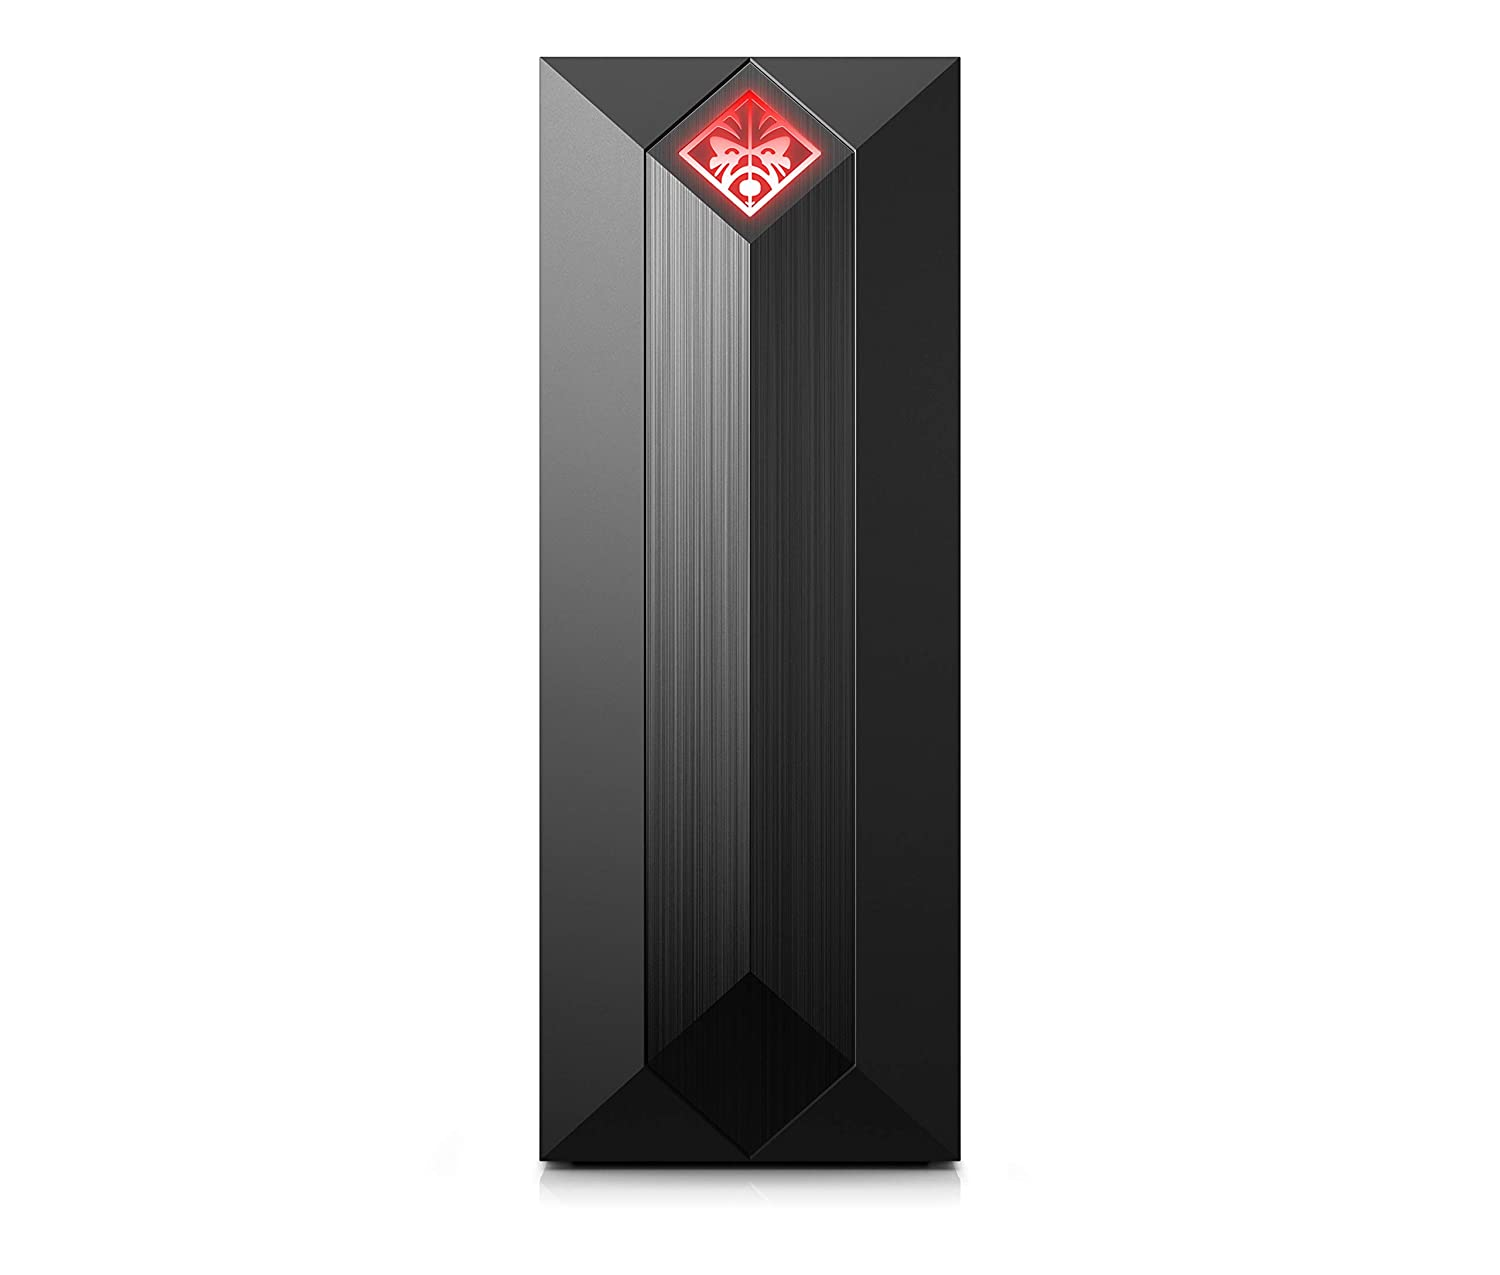 HP OMEN 875-0024ng 3,2 GHz AMD Ryzen 7 2700 Negro Escritorio PC - Ordenador de sobremesa (3,2 GHz, AMD Ryzen 7, 2700, 16 GB, 1256 GB, Windows 10 Home)